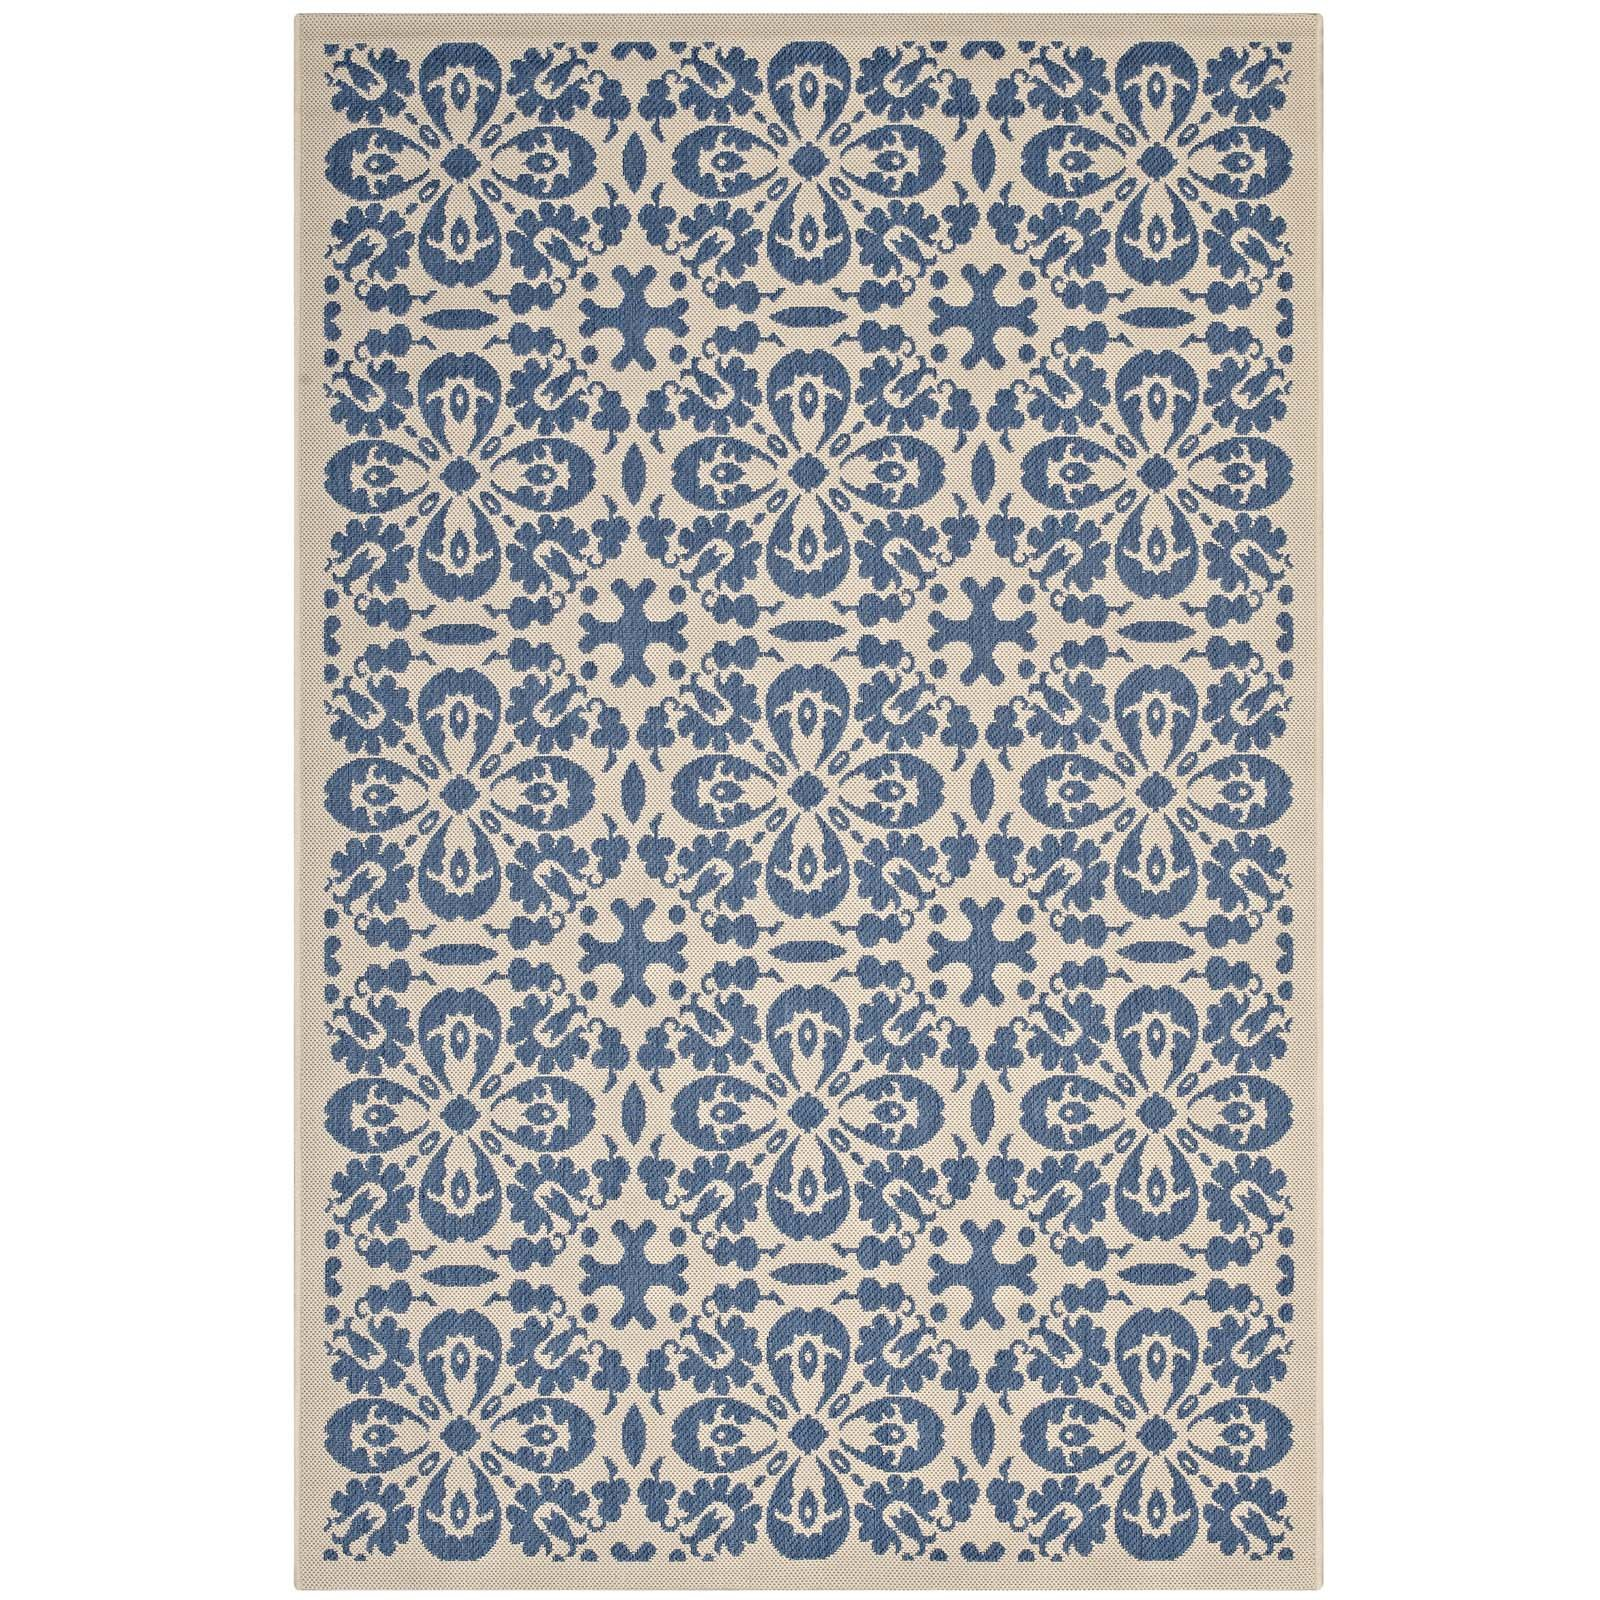 Modway R-1142C-810 Ariana Chevron with End Borders 8x10 Area Rug, Twin, Light and Dark Beige